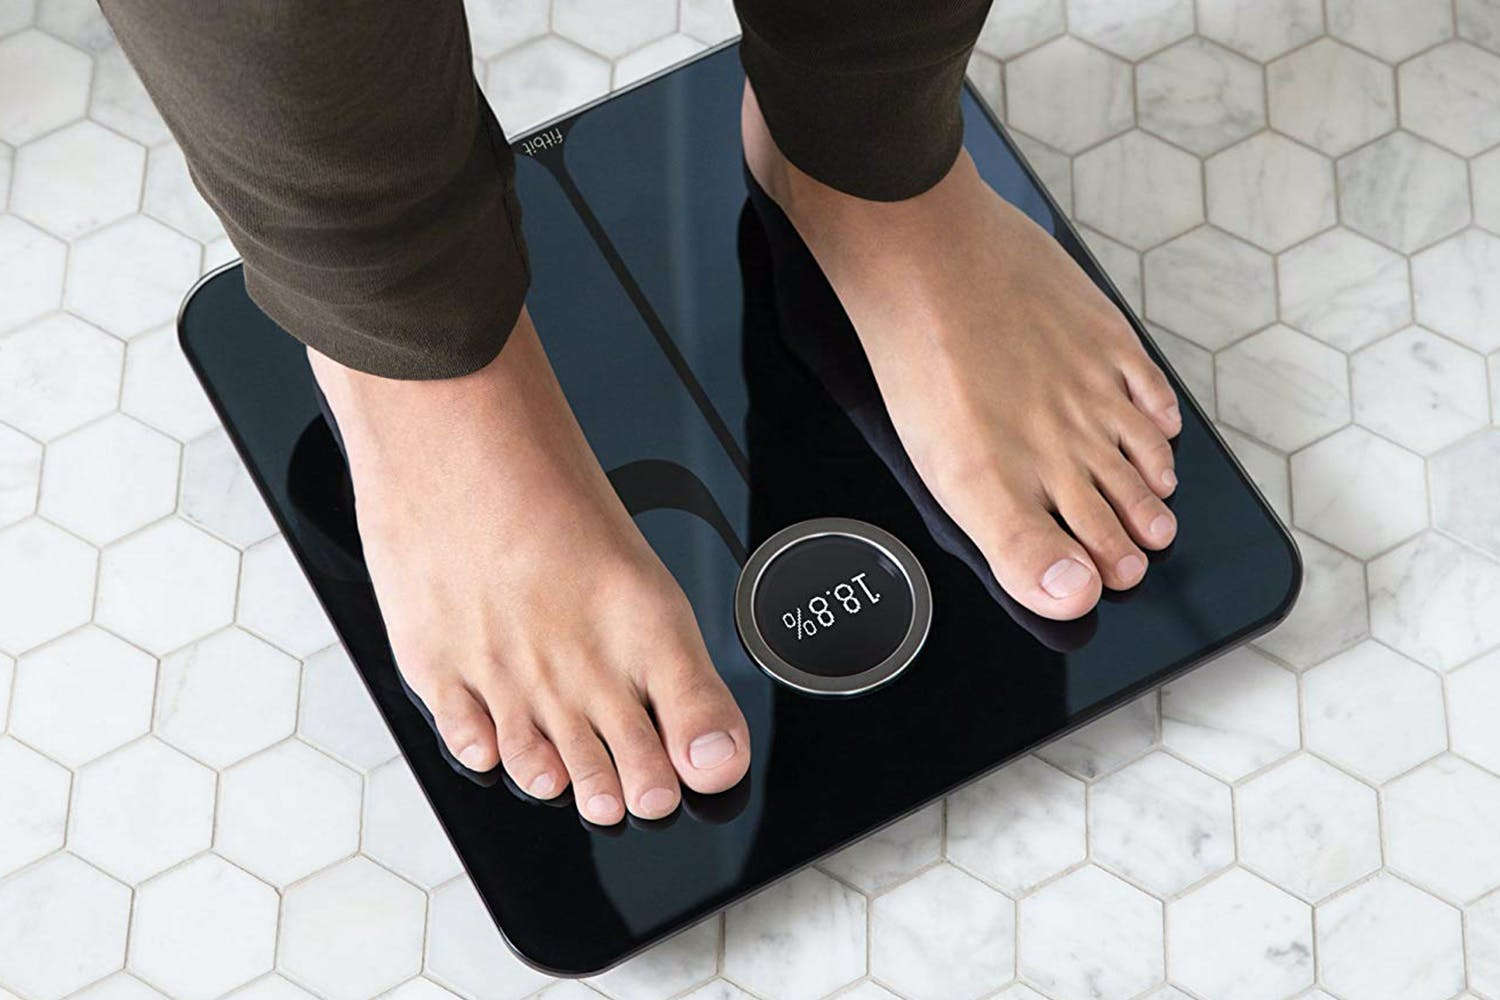 Fitbit Aria 2 Wi-Fi Smart Scale | Black